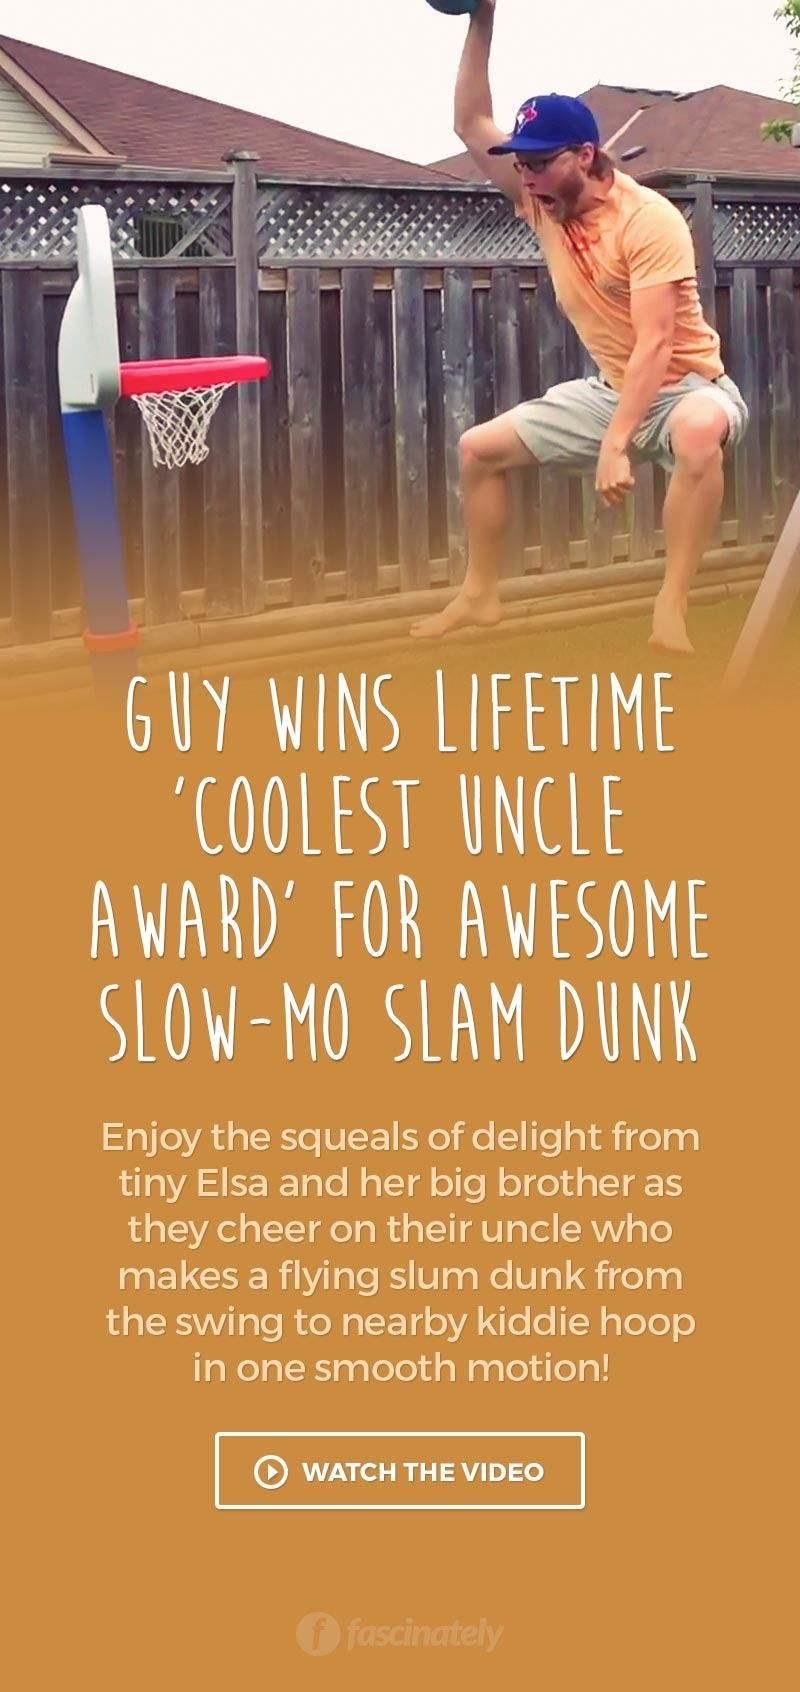 Guy Wins Lifetime 'Coolest Uncle Award' for Awesome Slow-Mo Slam